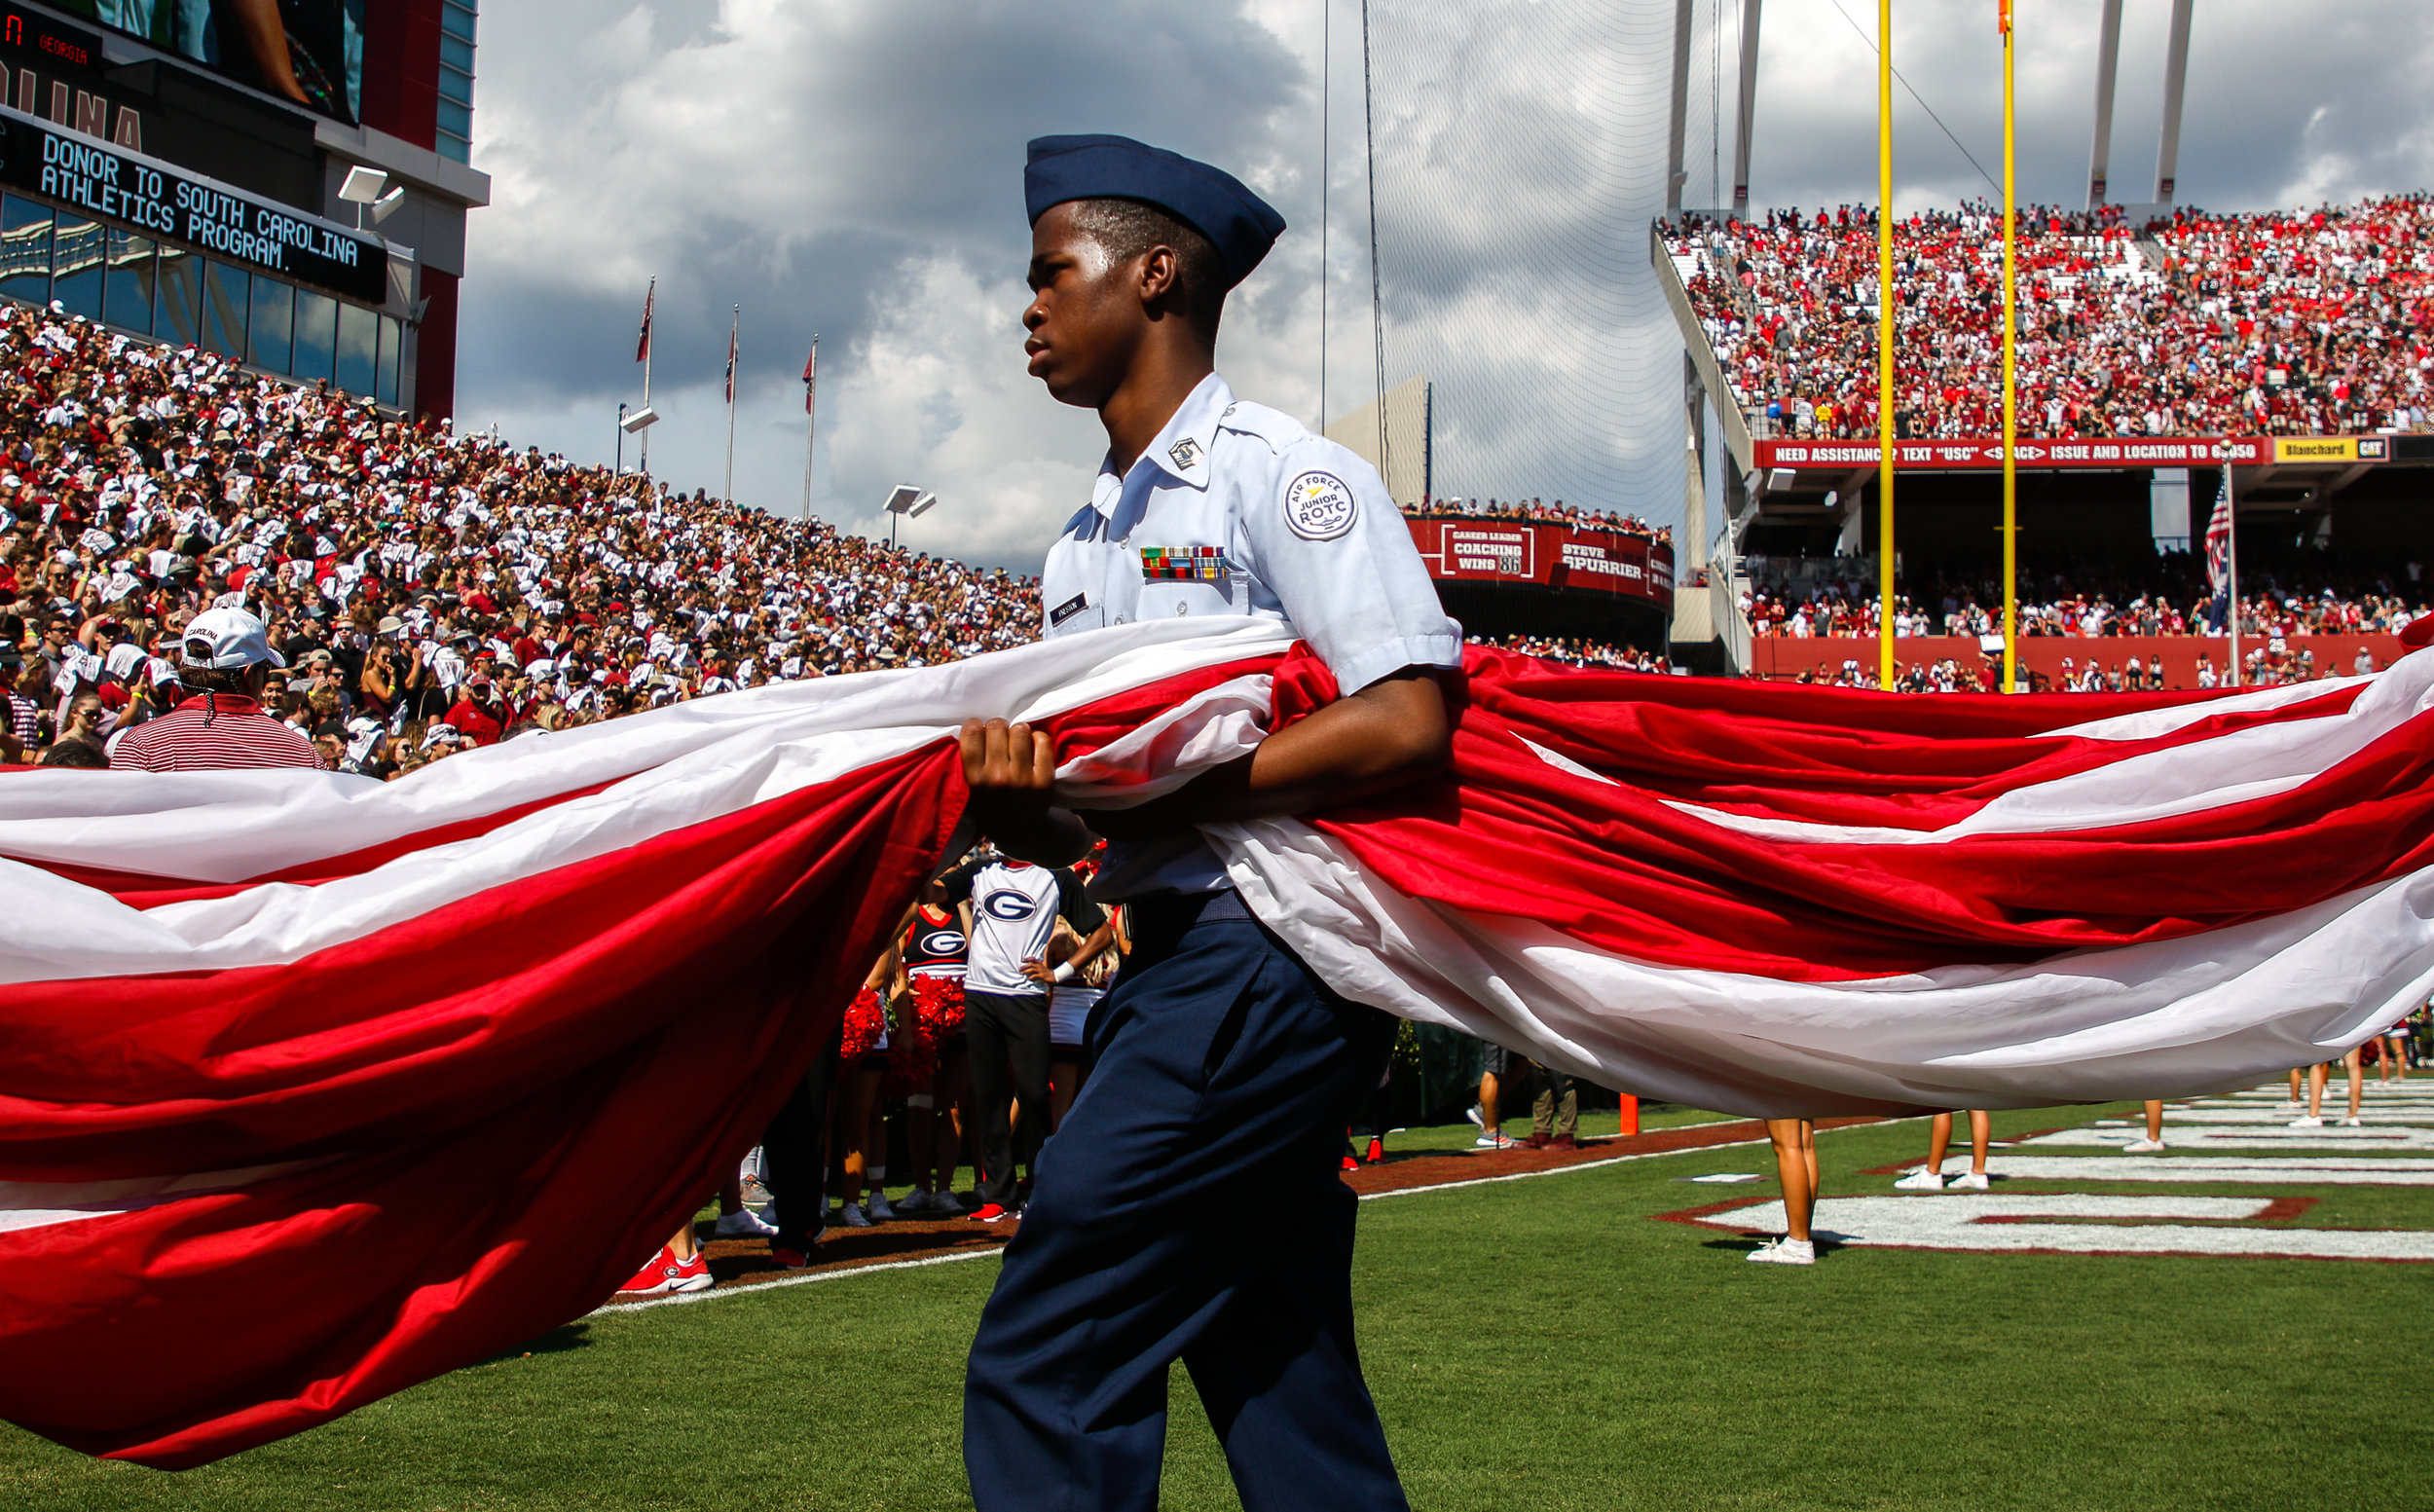 A junior Air Force ROTC member carries the American flag off the field following the singing of the National Anthem at a college football game between the University of Georgia and the University of South Carolina in Williams-Brice Stadium on Saturday, September, 8, 2018.